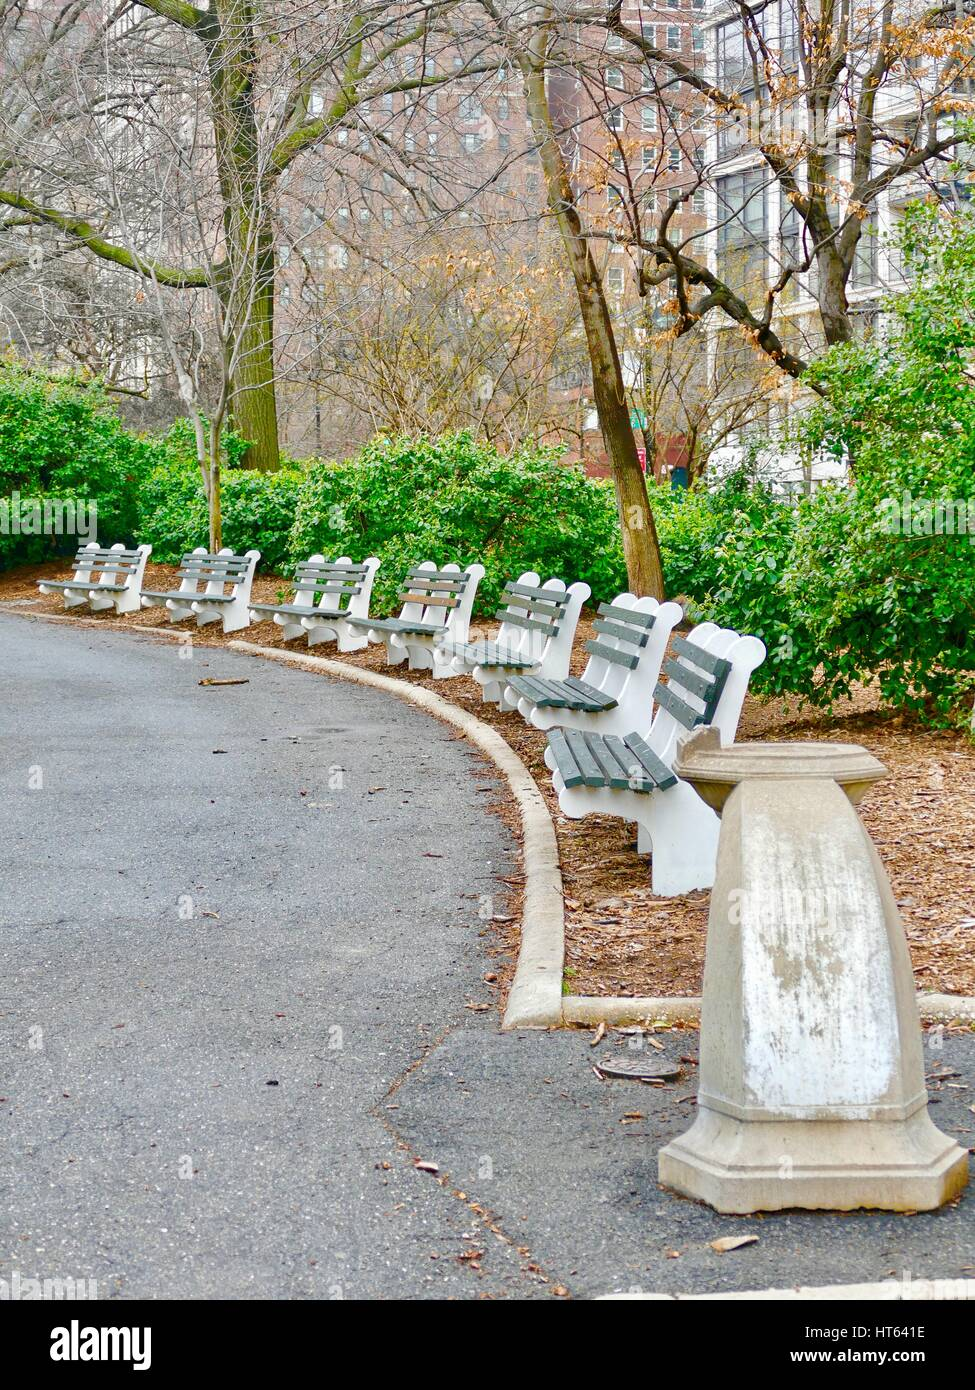 Green and white public benches, New York, New York, USA. Stock Photo